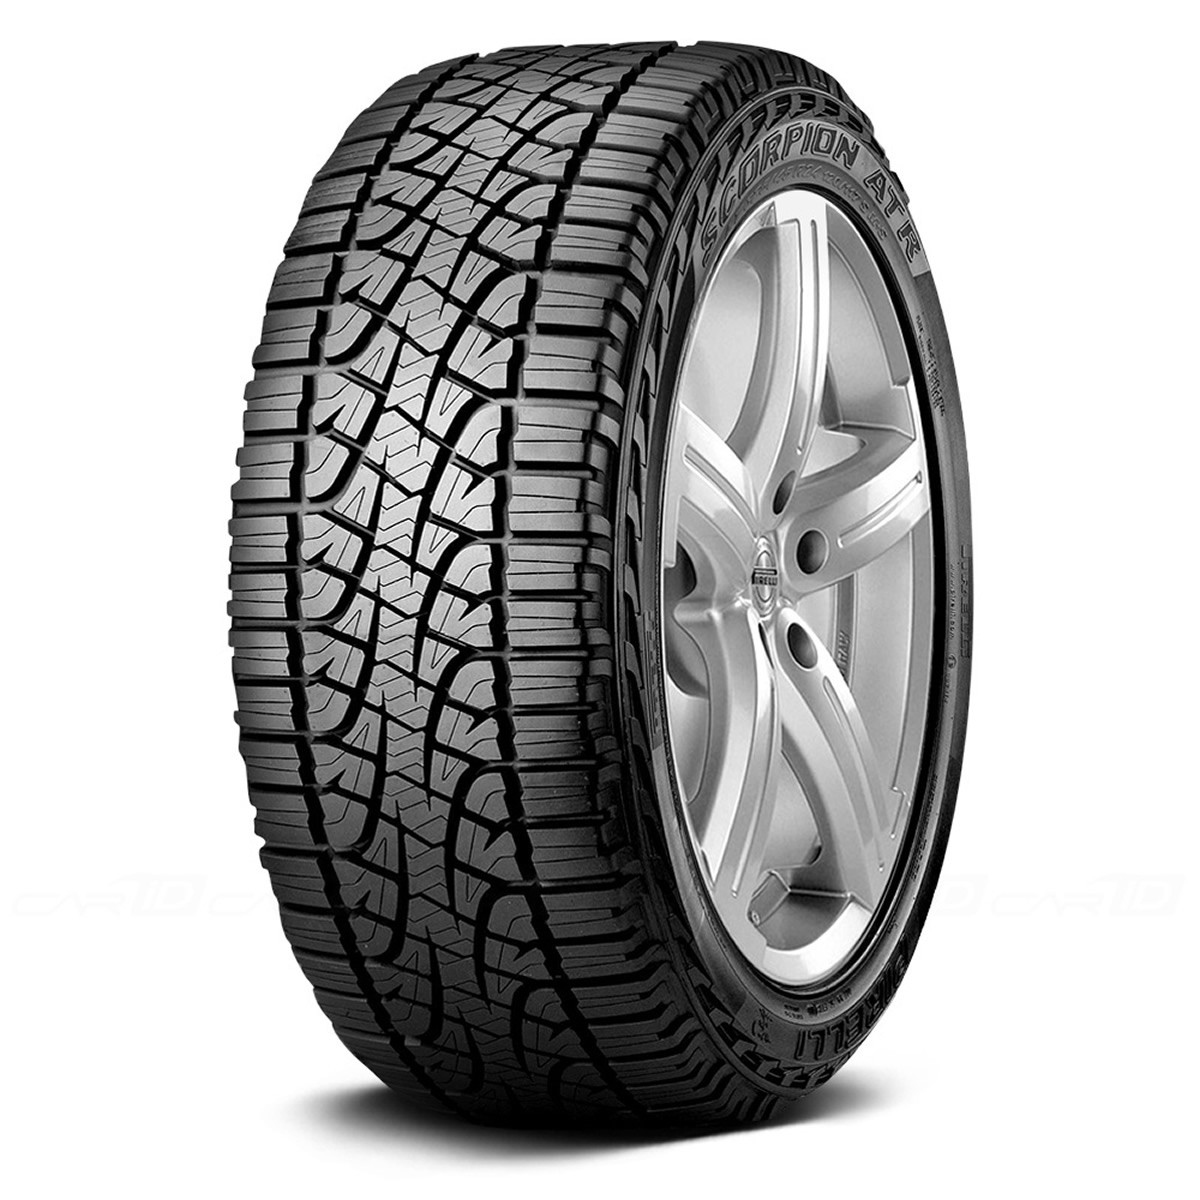 Pirelli Scorpion All Terrain Plus 235/65 R 17 Tubeless 108 H Car Tyre